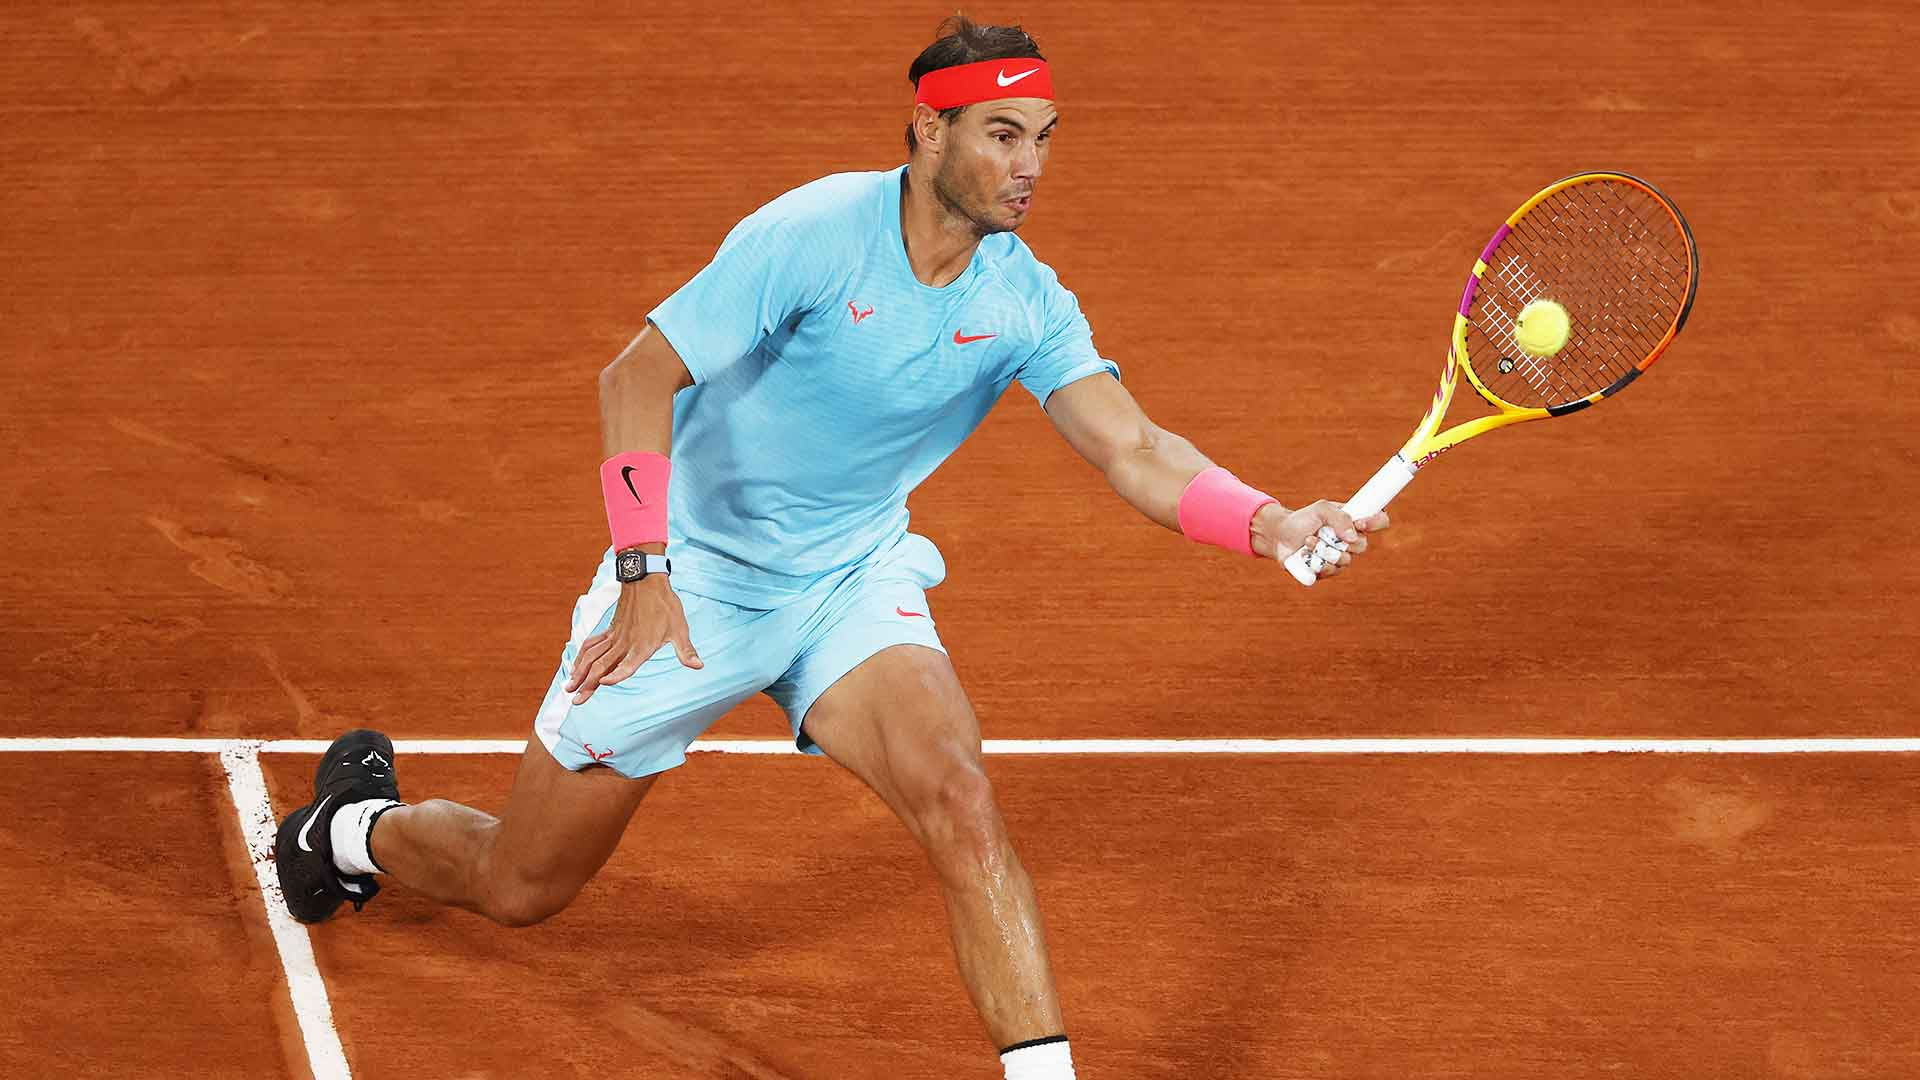 Rafael Nadal improves to 96-2 at Roland Garros.